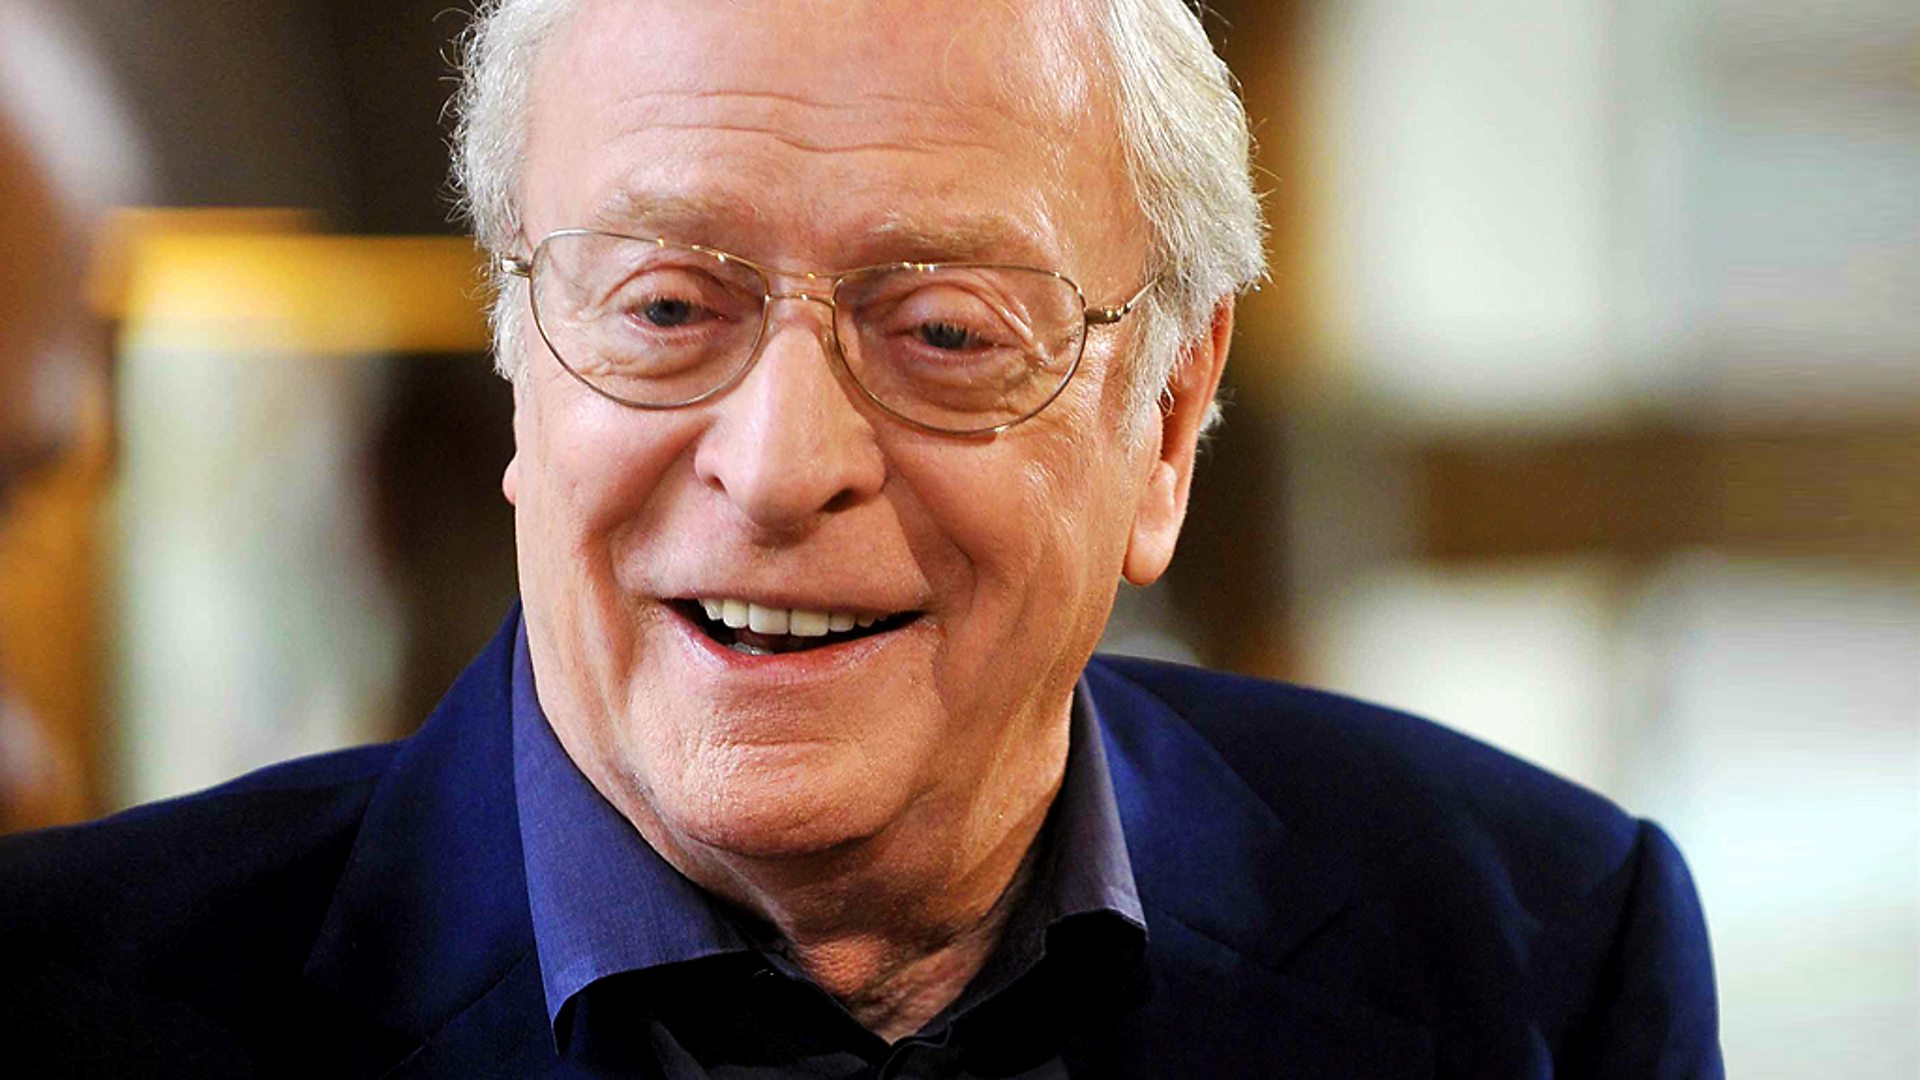 Michael Caine Backgrounds